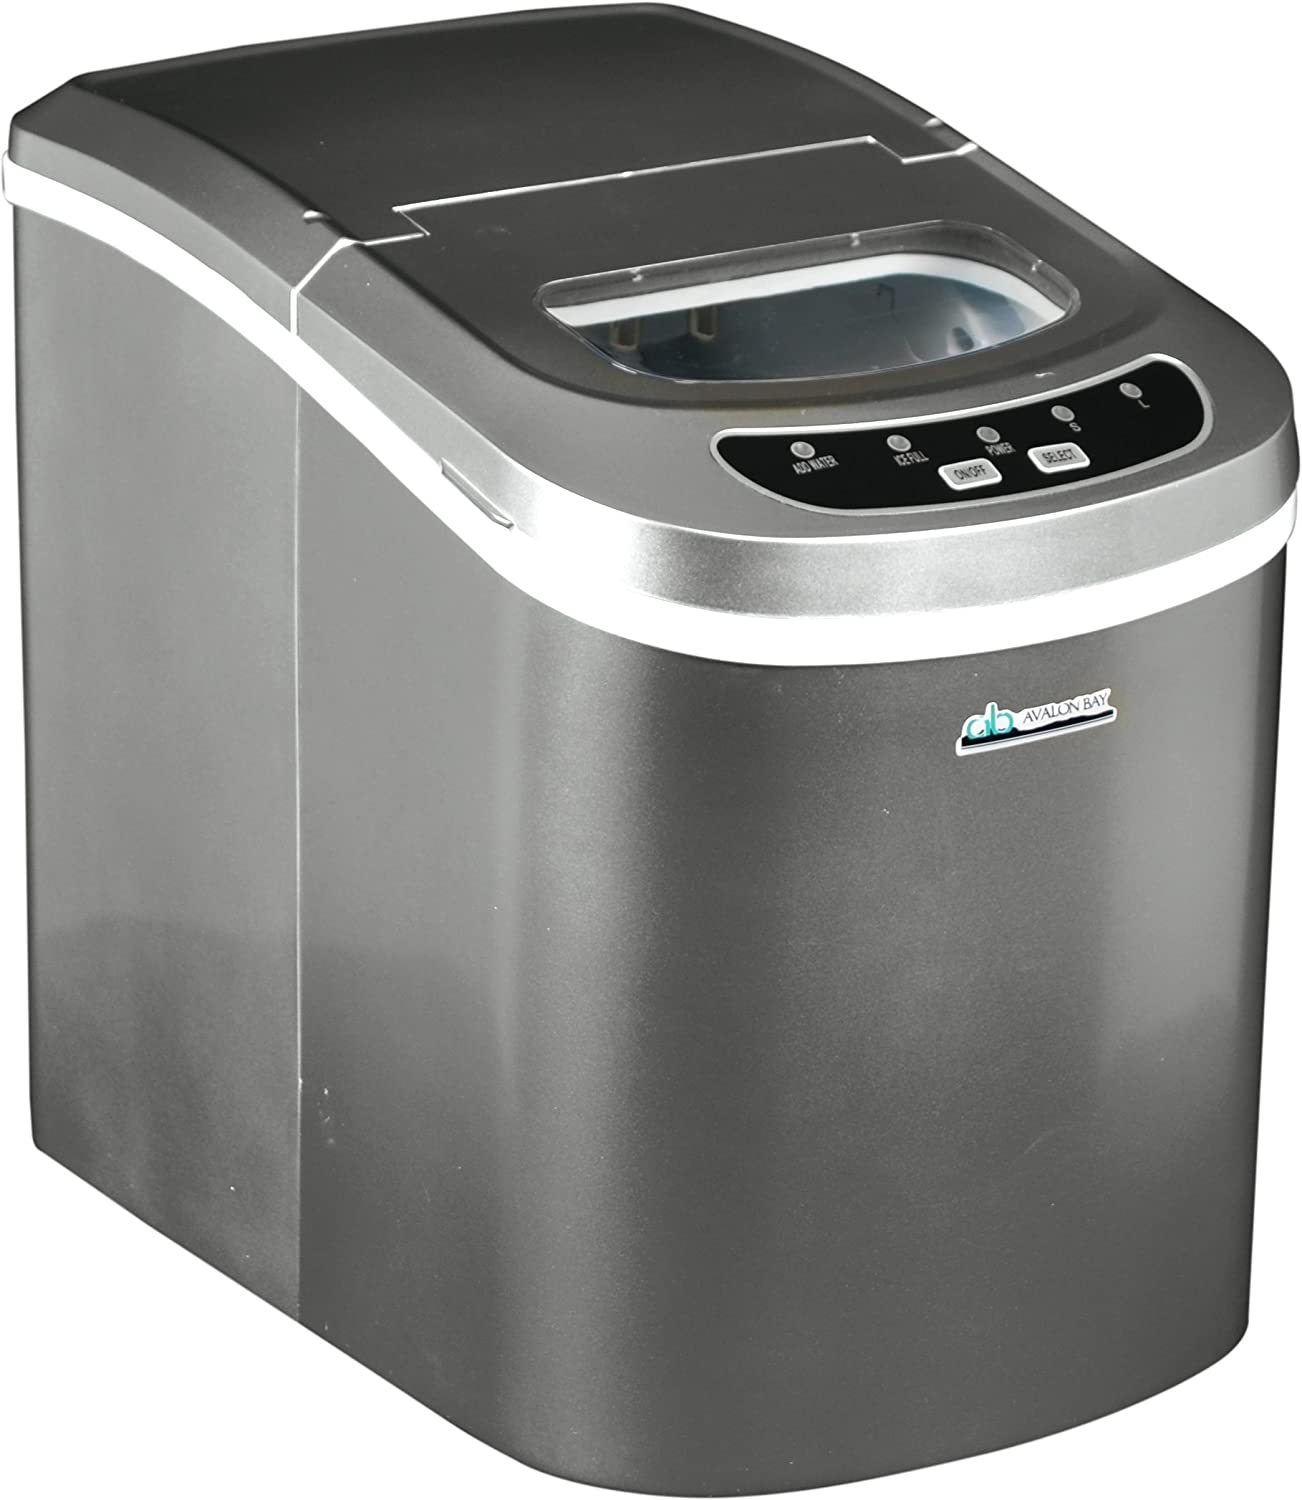 Avalon Bay AB-ICE26S: Portable Ice Maker That Has Compact Size and also Lightweight Design